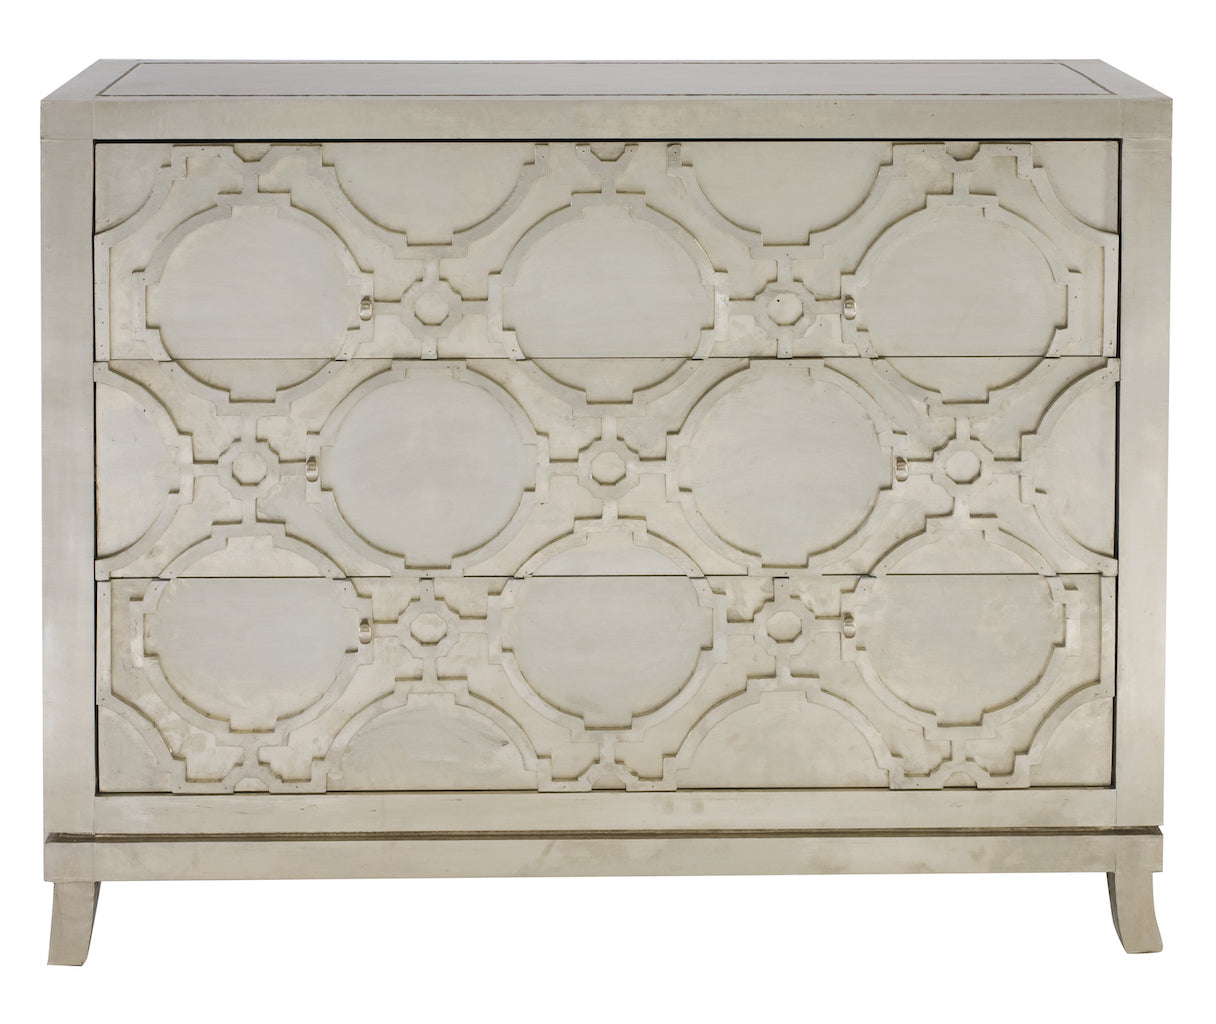 small three drawer silver dresser with geometric embossed pattern